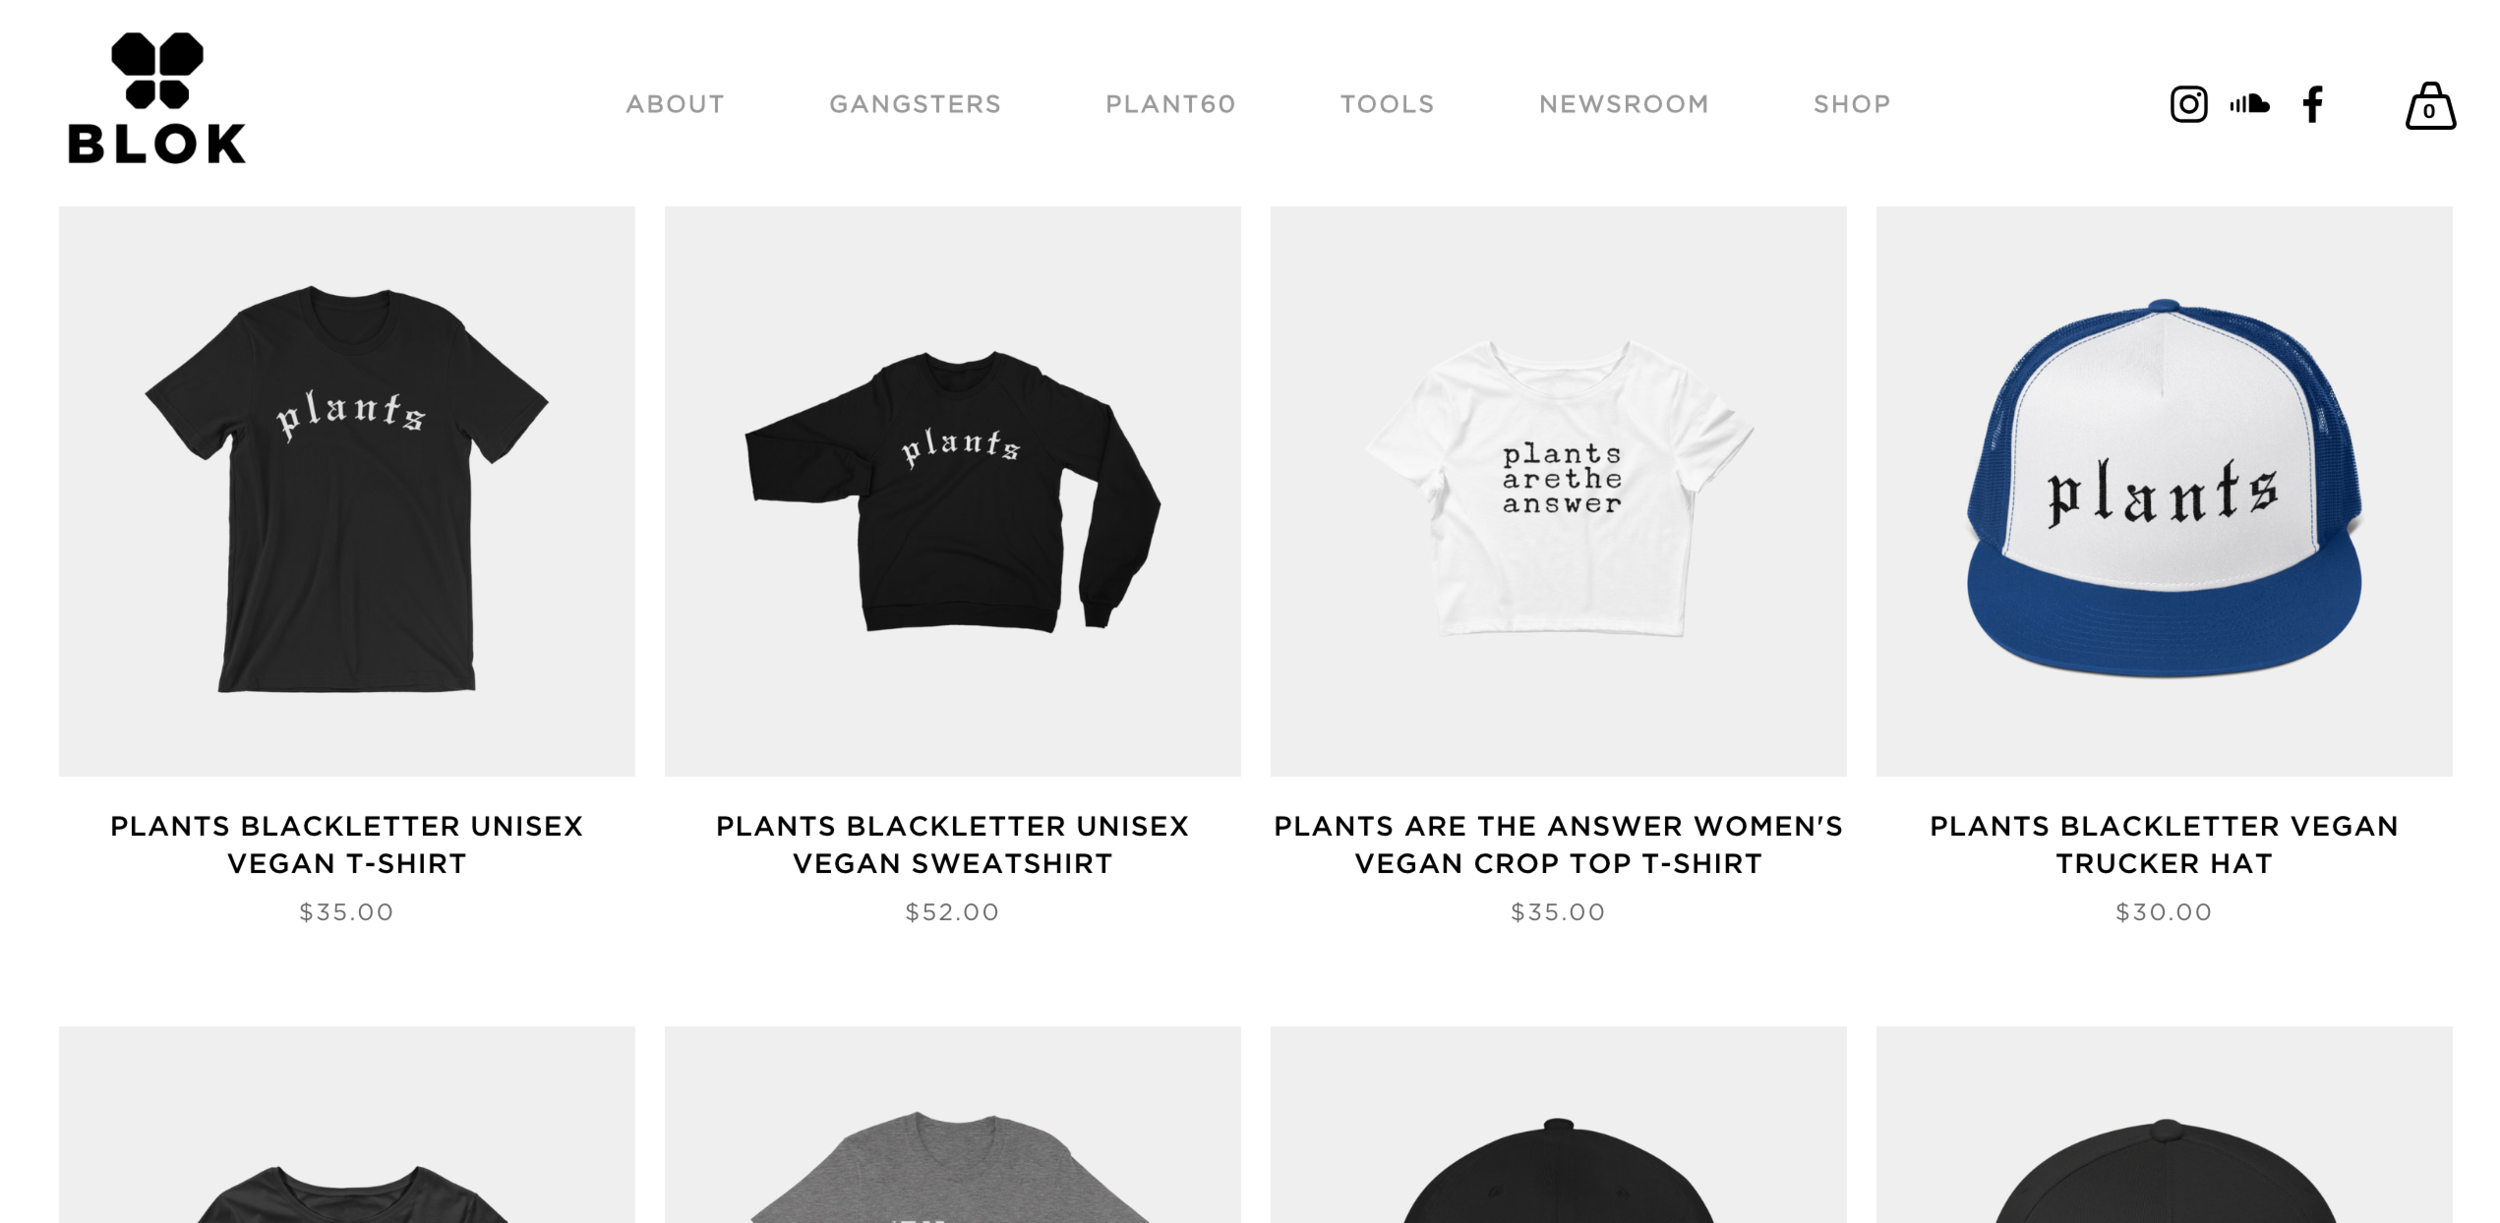 unique ecommerce store - BLOKLIFE set out to show that not all vegans wear rainbows and live in mud huts. The apparel's modern, edgy monotone style has trailblazed it's way through the vegan scene, and resulted in thousands of domestic and international product sales.